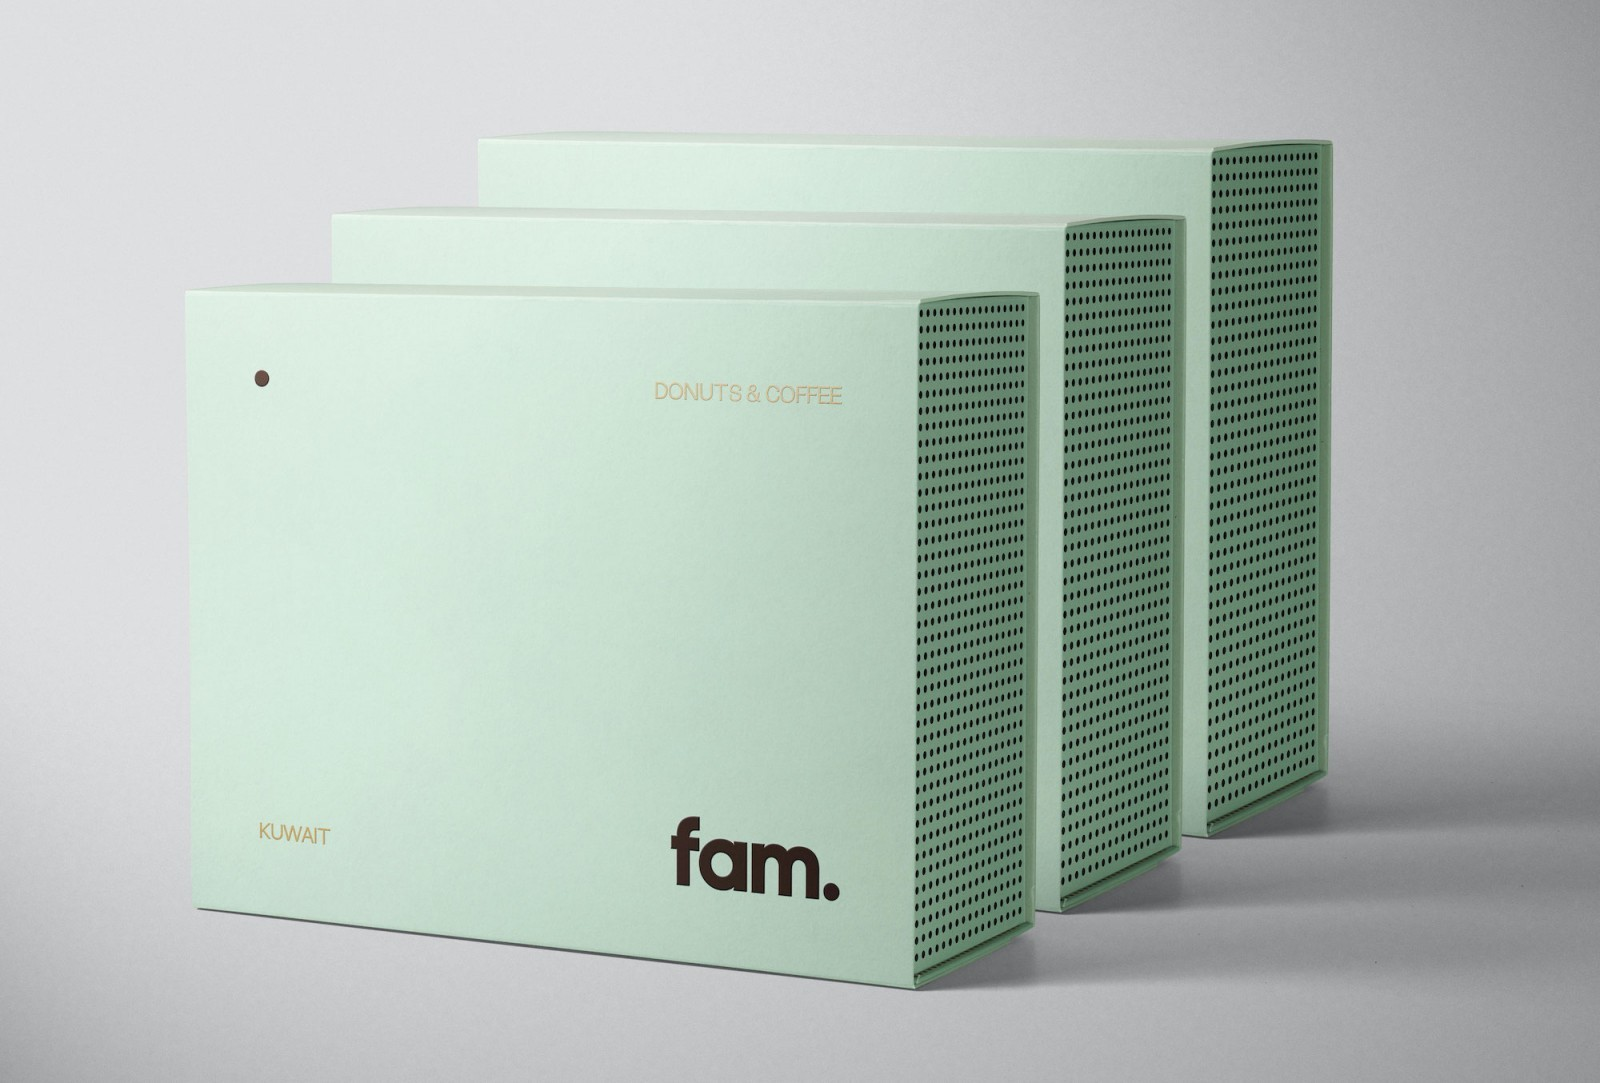 Fagerström Create Visual Identity and Packaging for Fam – A Premium Donut Brand From Kuwait